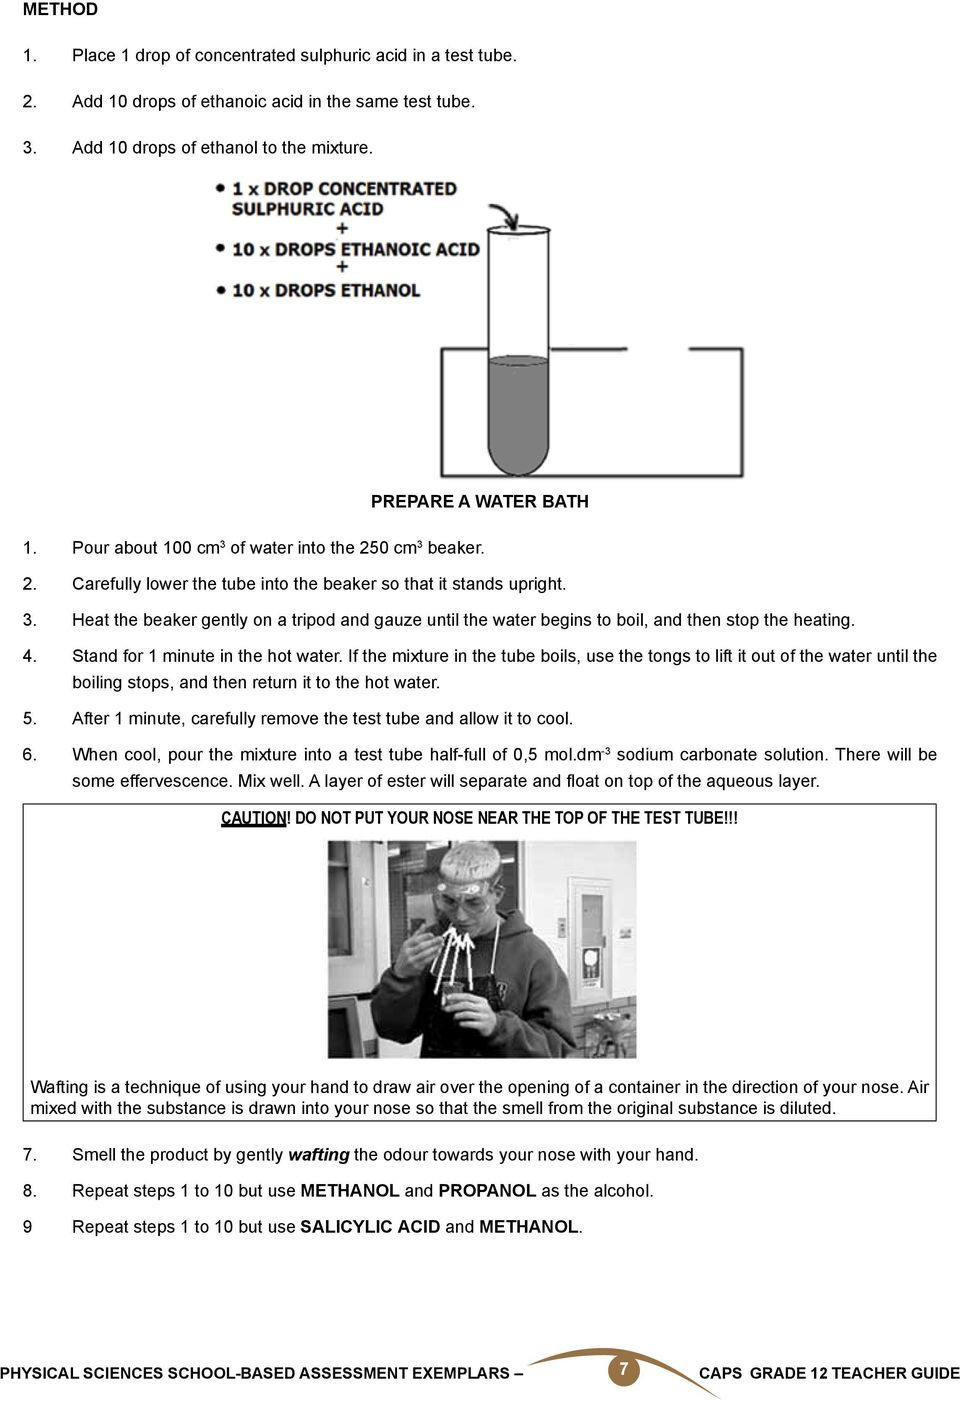 Physical Sciences School Based Assessment Exemplars Caps Grade 12 Plan Instructor S Guide Electric Circuits Experiment 4 Stand For 1 Minute In The Hot Water If Mixture